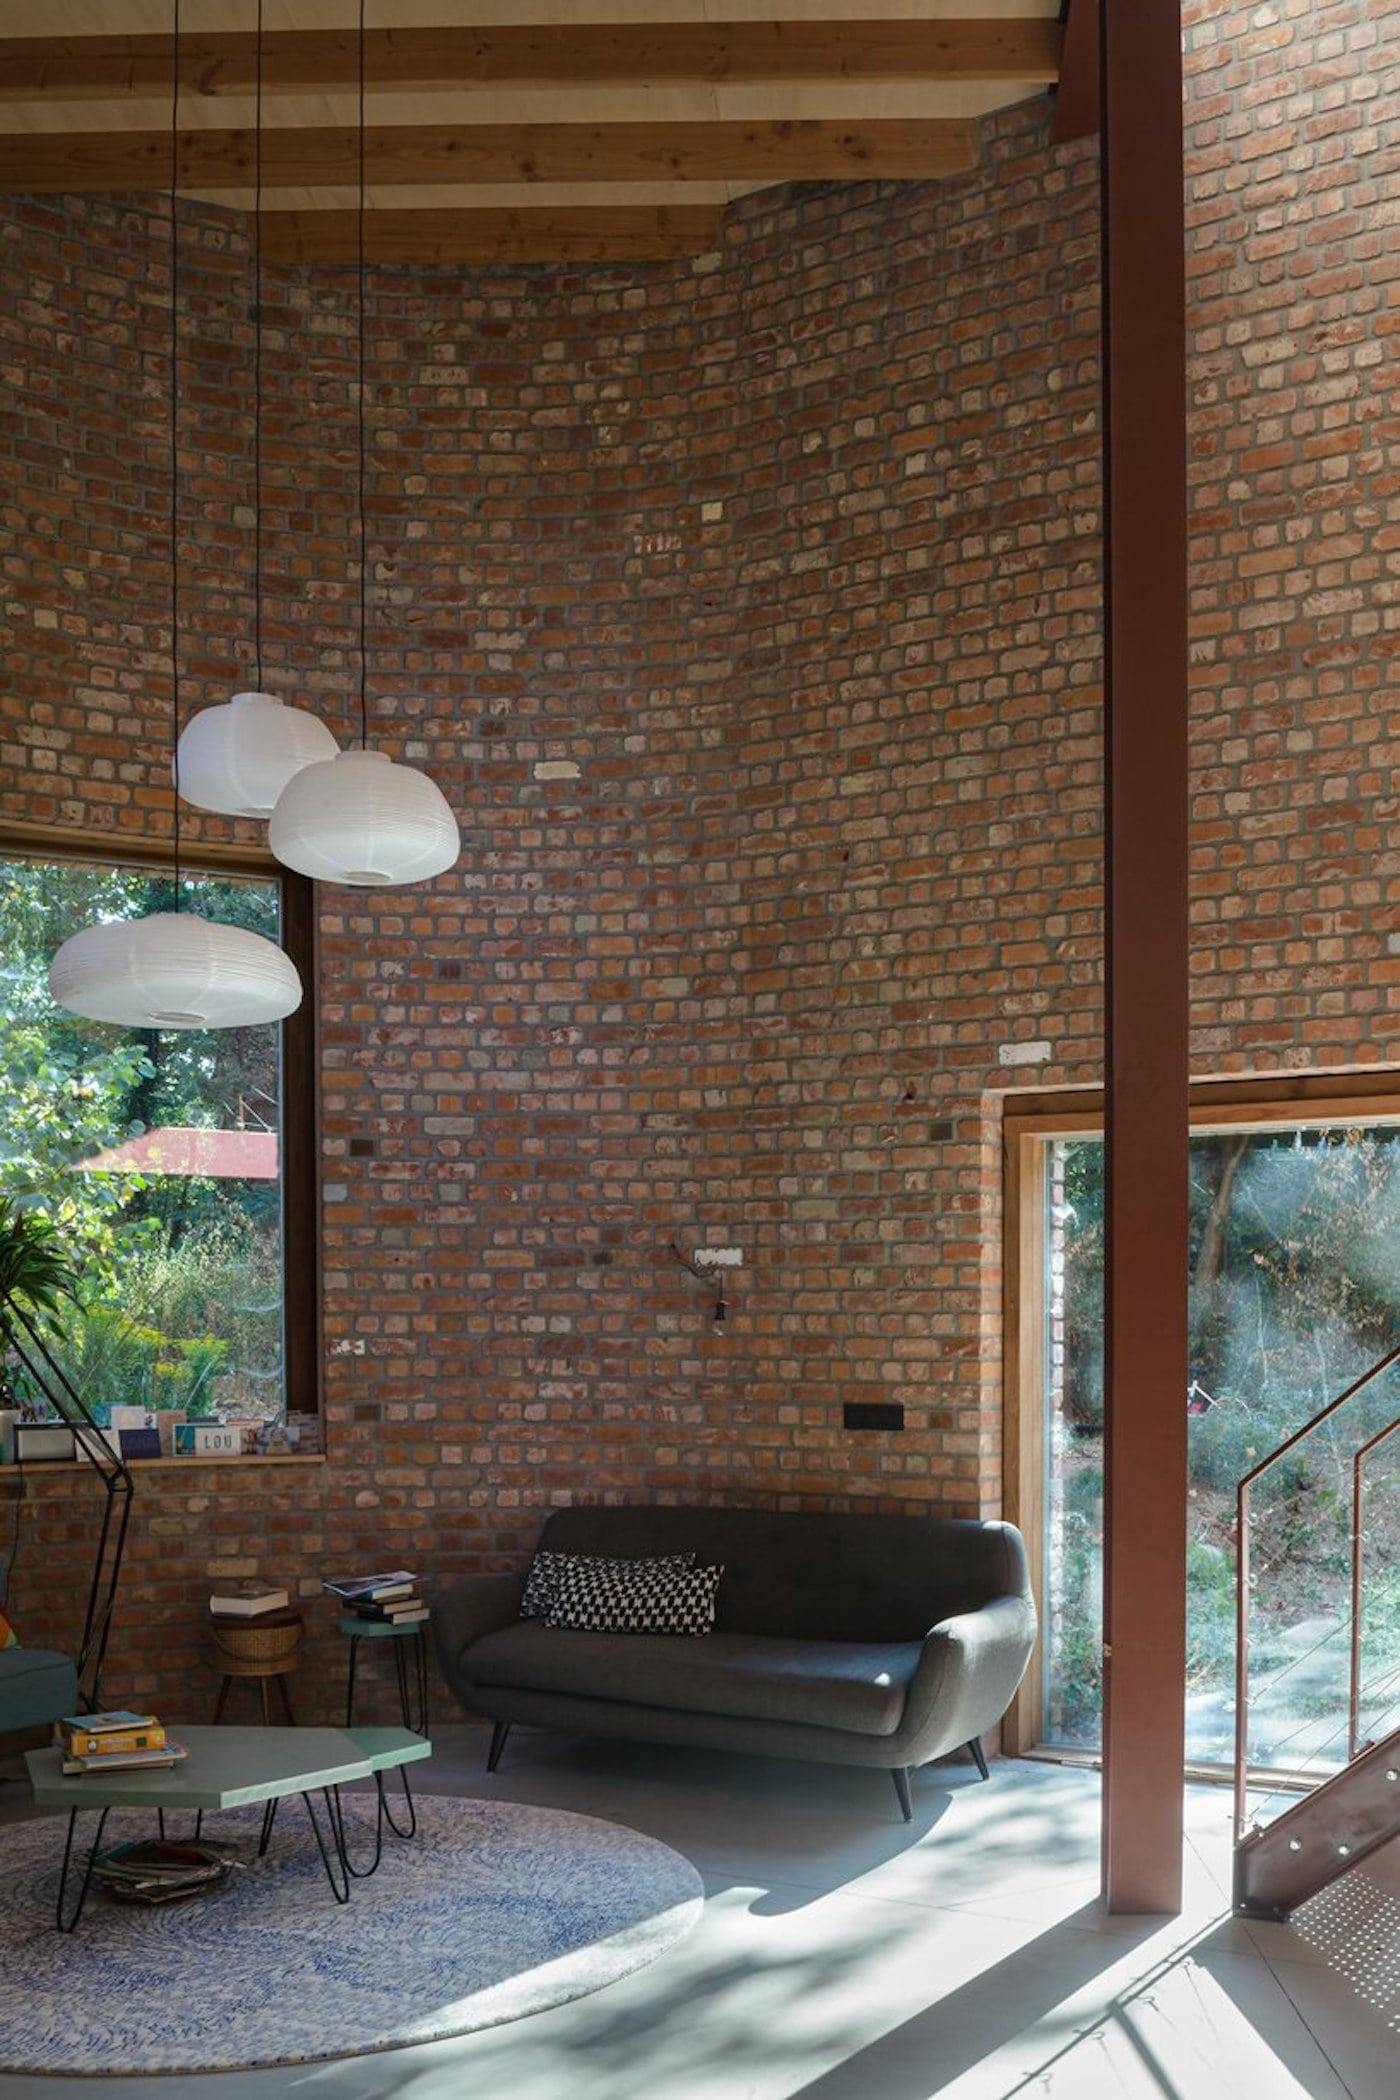 Interior view of lounge room with recycled bricks behind